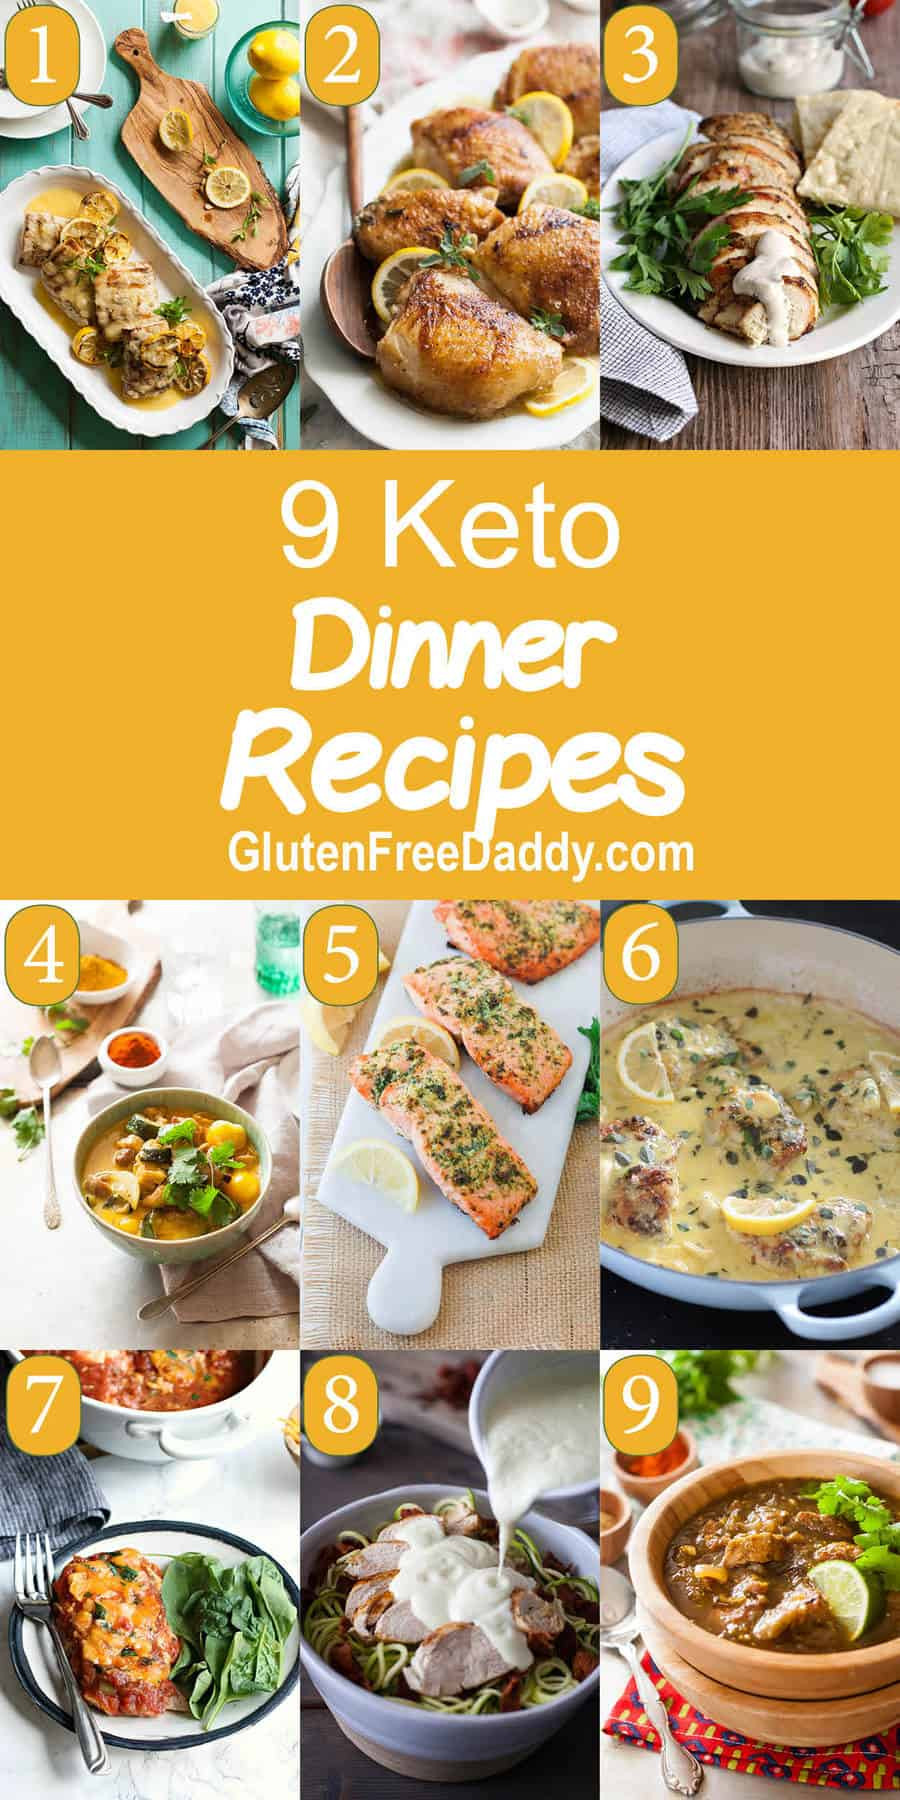 Dairy Free Keto Dinner Recipes Best Keto Dinner Recipes Low Carb and Still Delicious